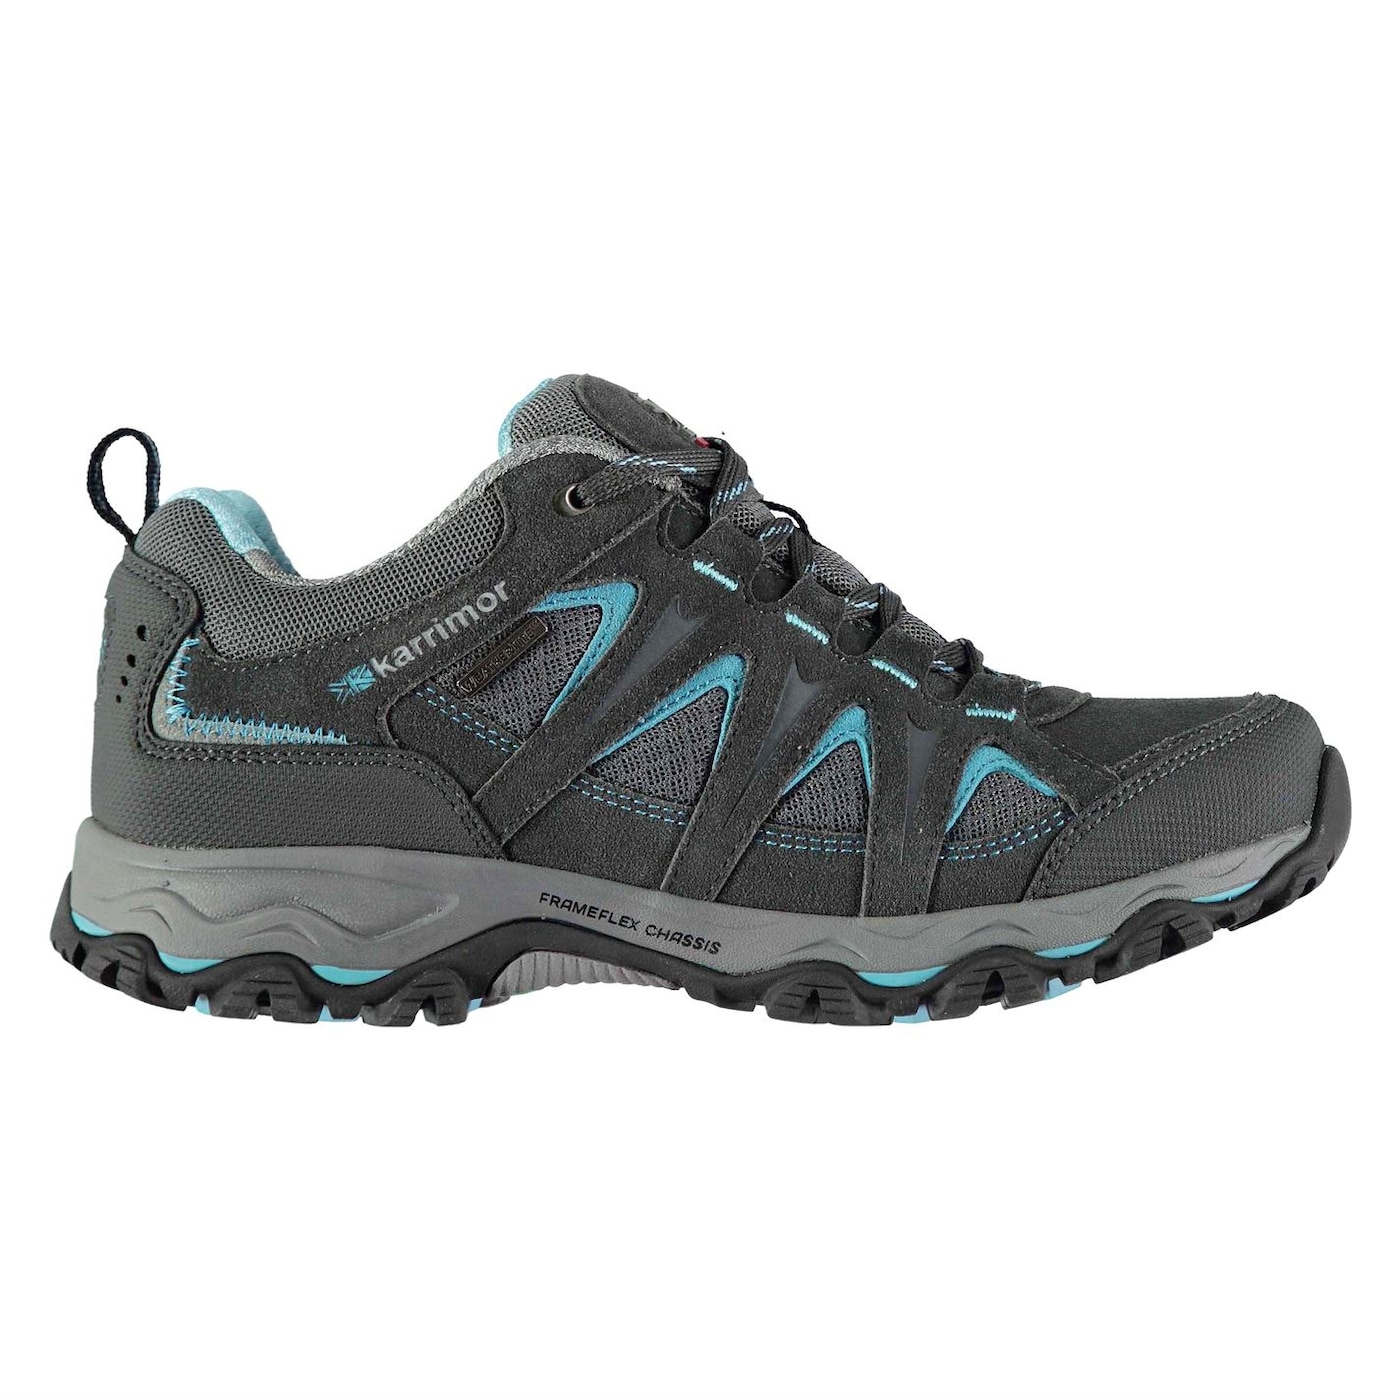 Karrimor Mount Low dámské Walking Shoes